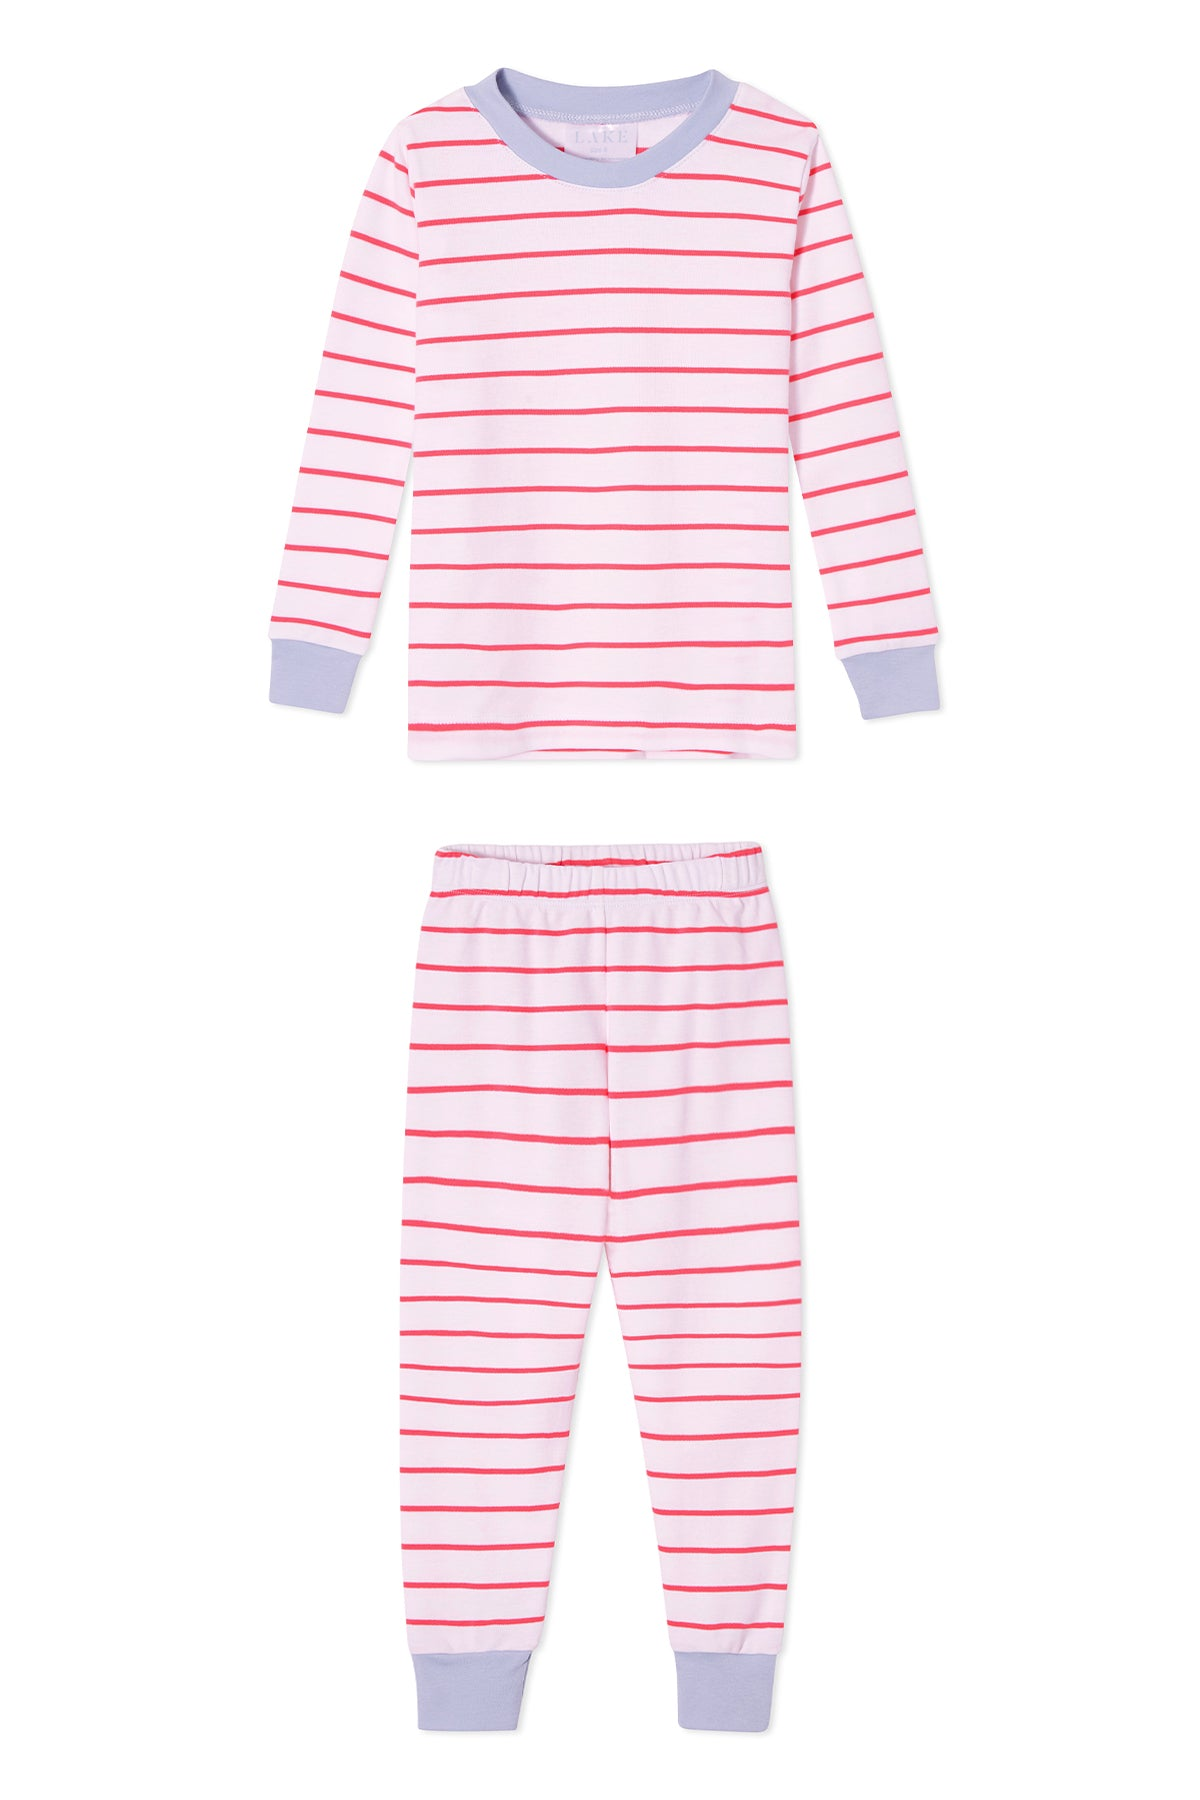 Kids Long-Long Set in Sorbet